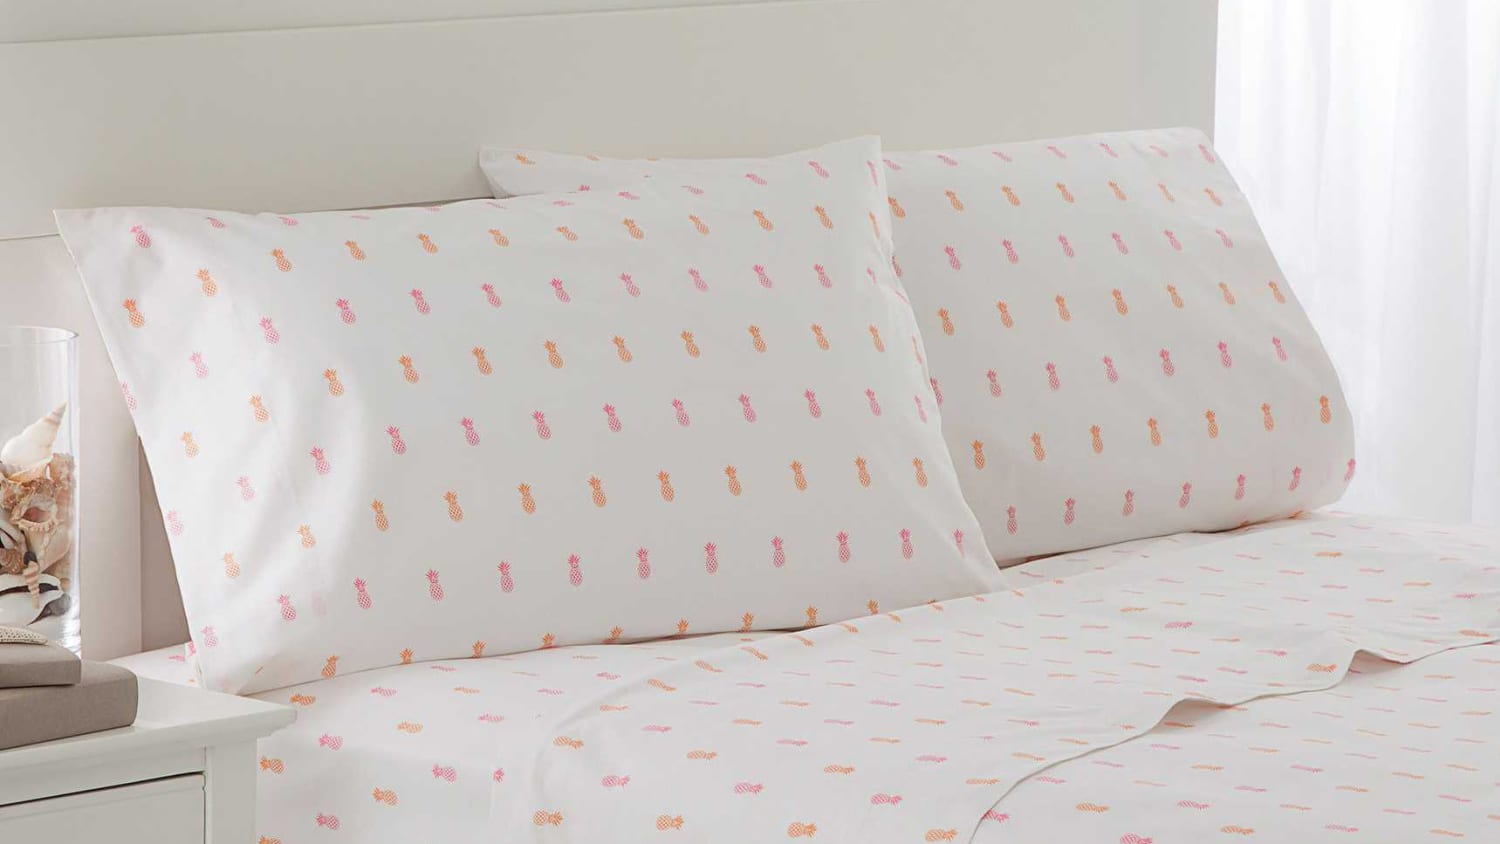 11 Cotton Sheet Sets In Fresh Modern Prints Apartment Therapy